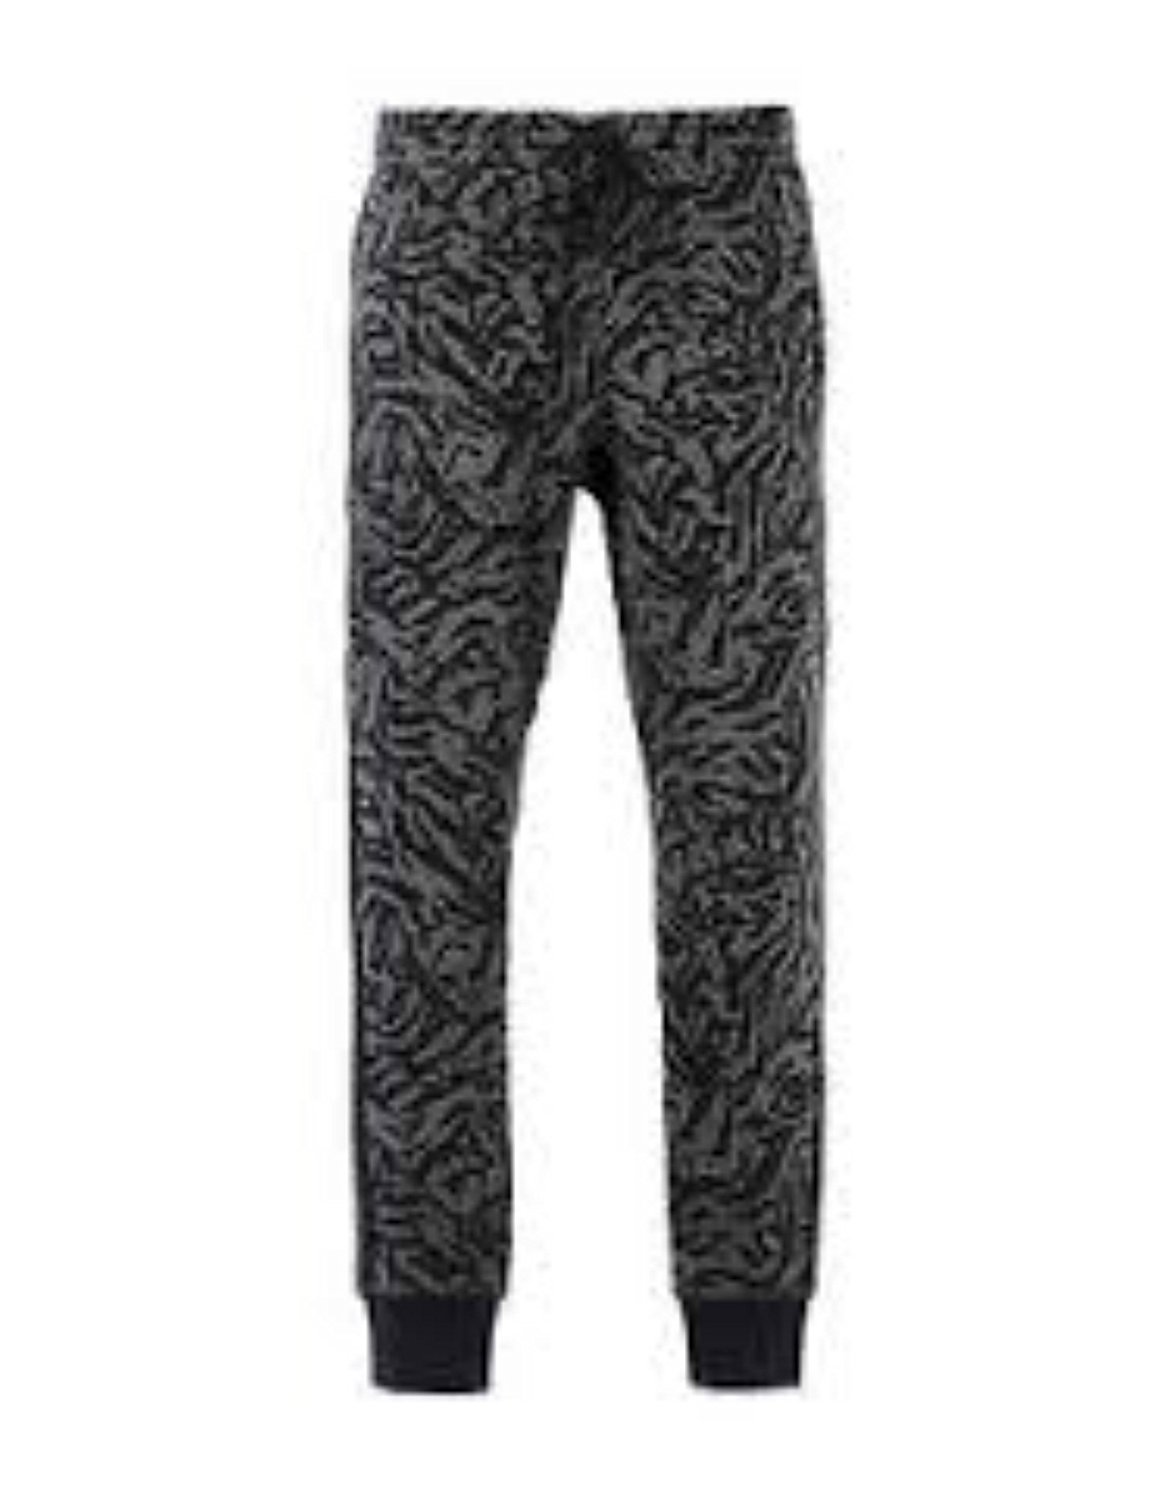 a39c7c05820e Buy Nike Mens Knows Allover Print Cuff Football Jogger Pants in ...